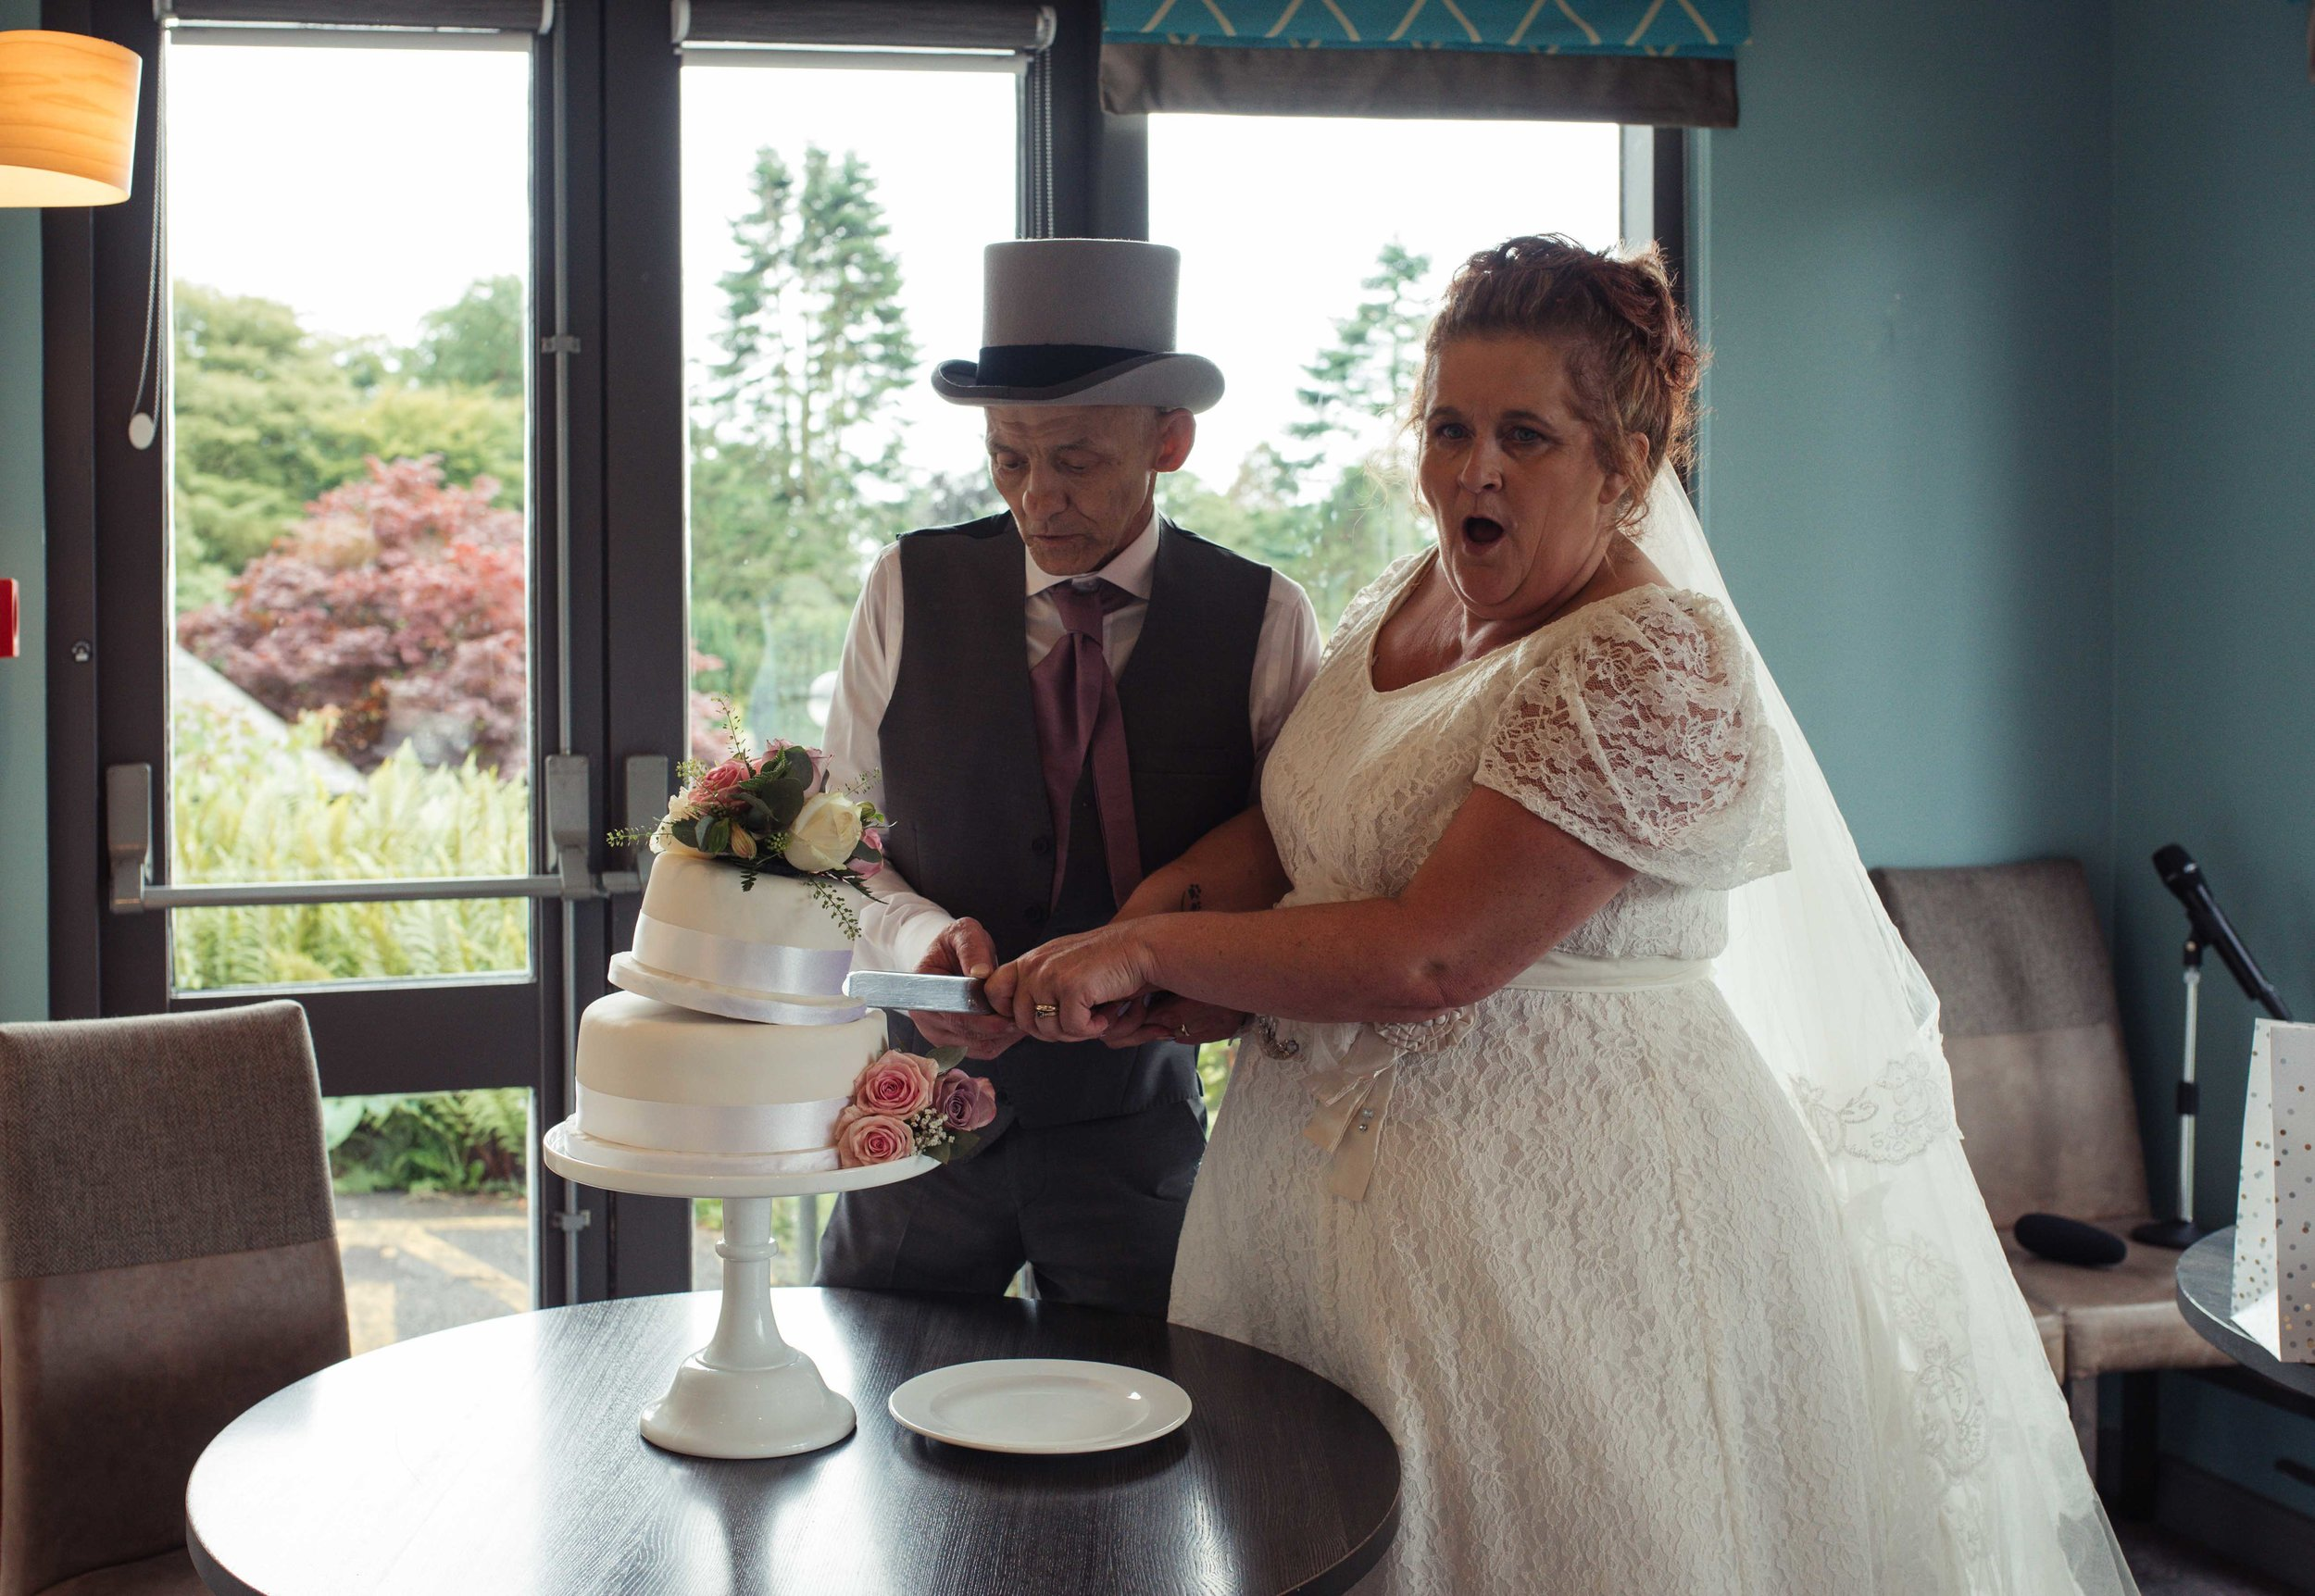 The bride and groom almost make the cake topple as they cut it in the greenhouse restaurant